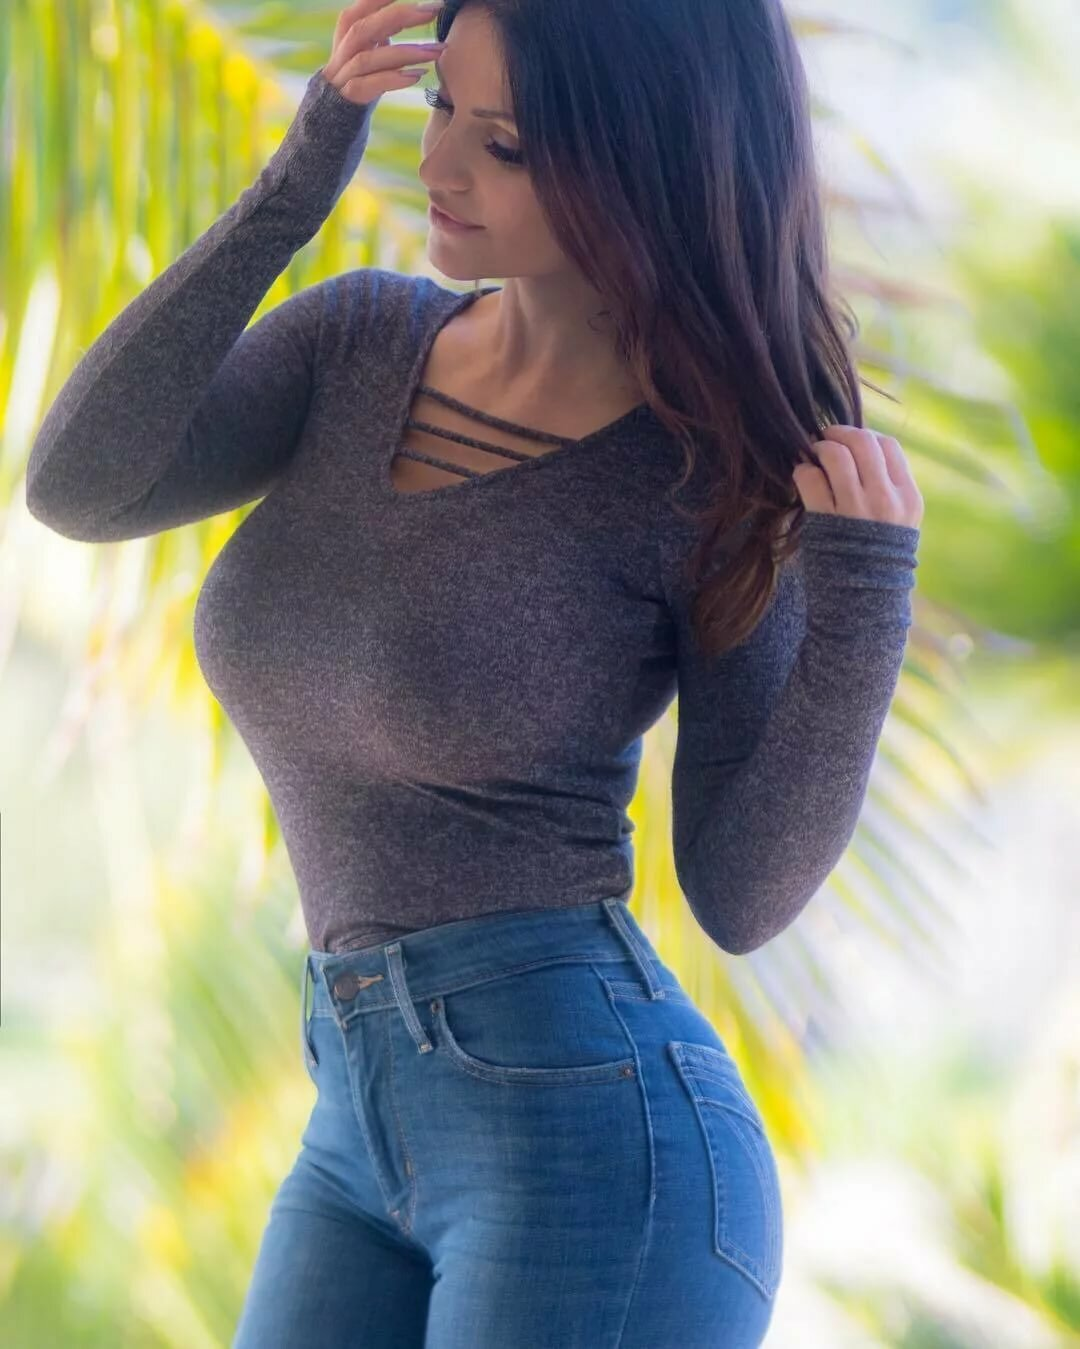 Youtube babe jeans boobs